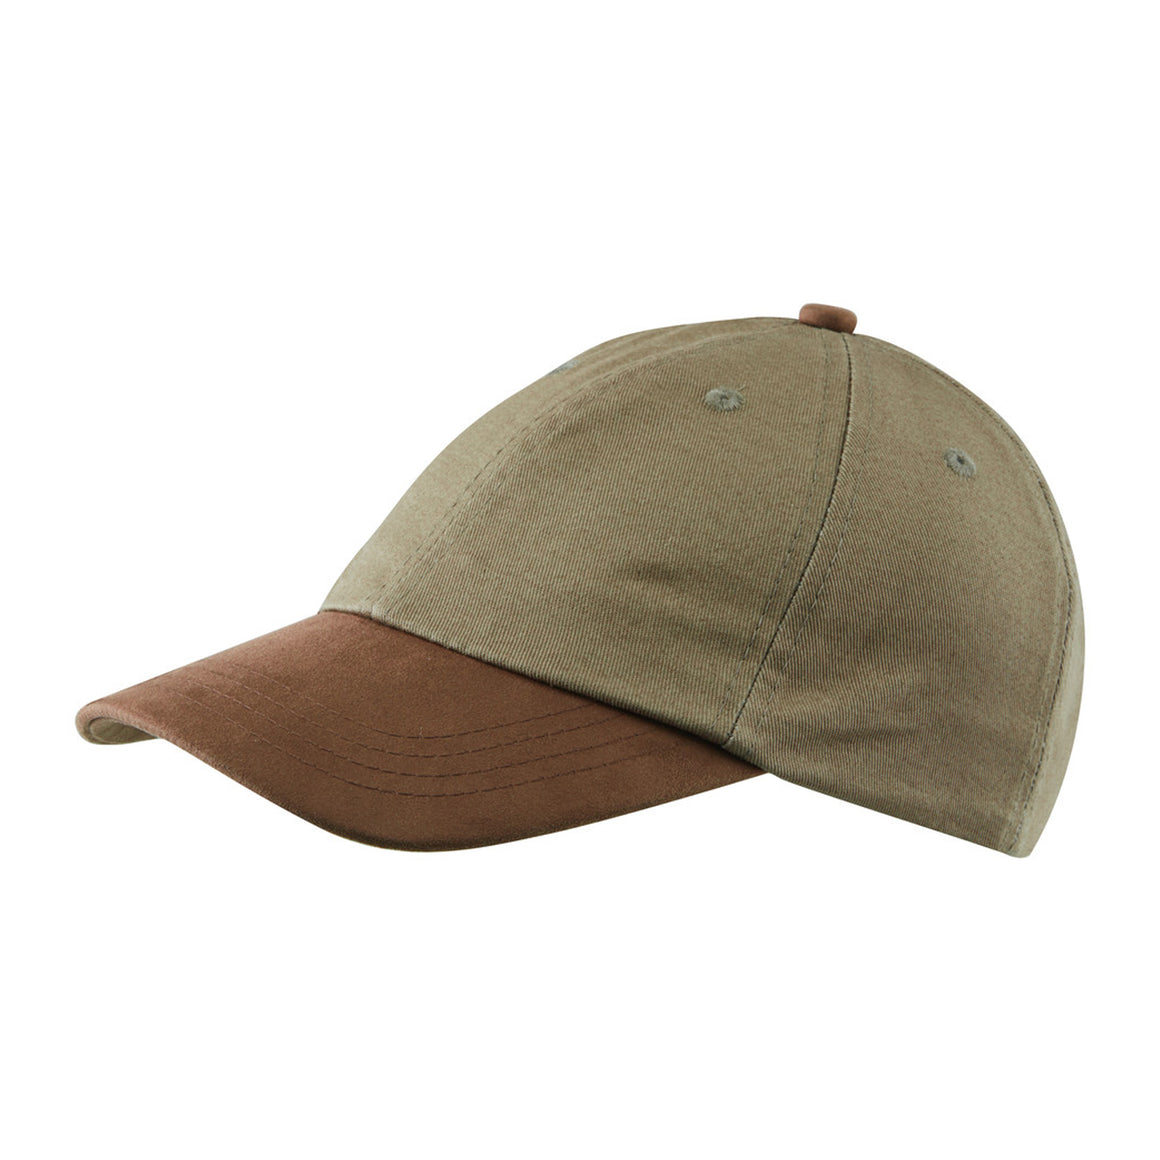 Cowes Baseball Cap for Men in Olive